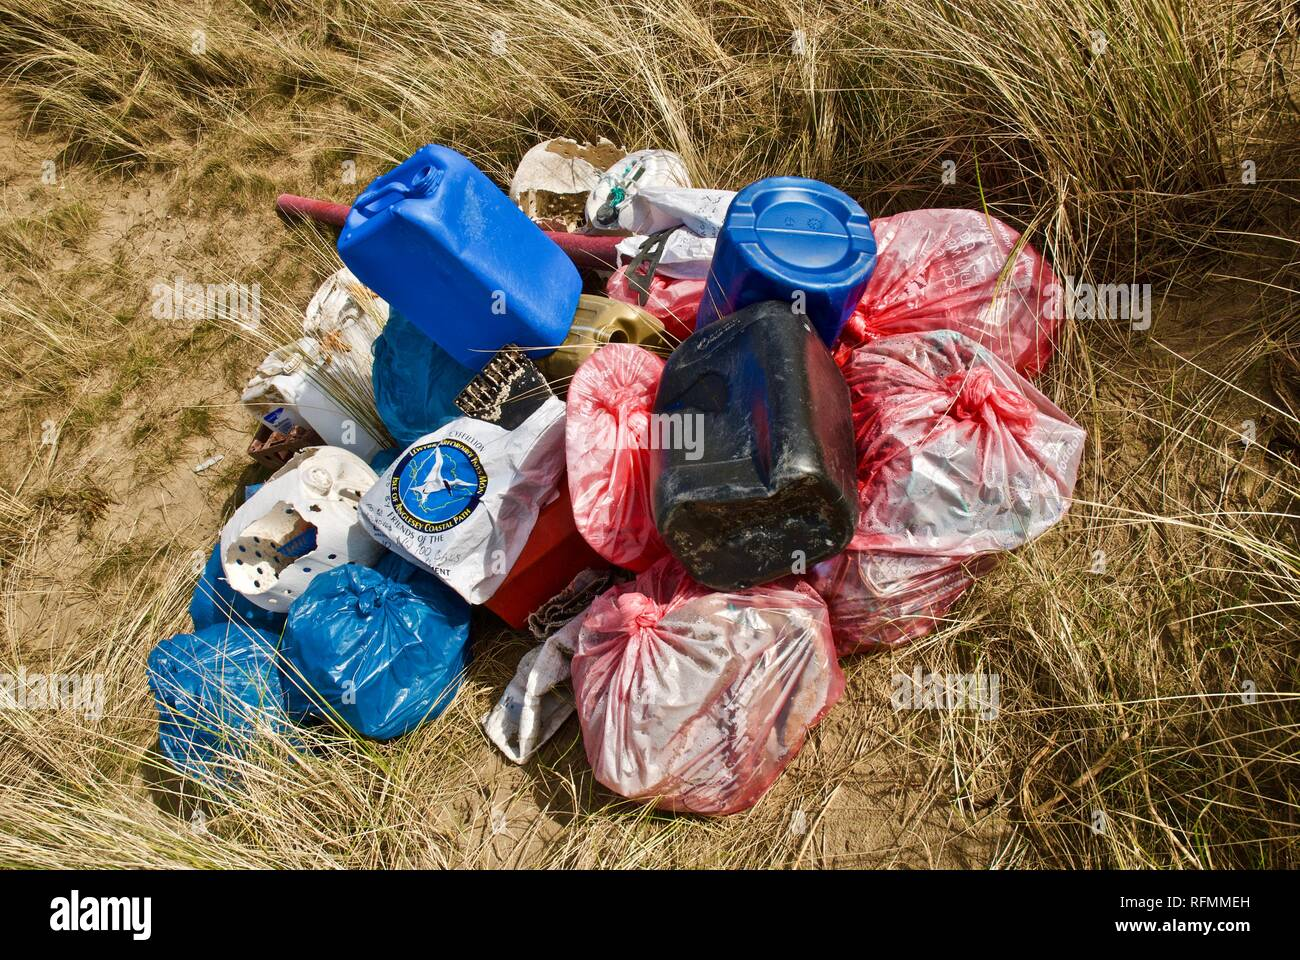 A beach collection of plastic waste and pollution washed up on a beach in Rhosneigr, Anglesey, North Wales, UK - Stock Image